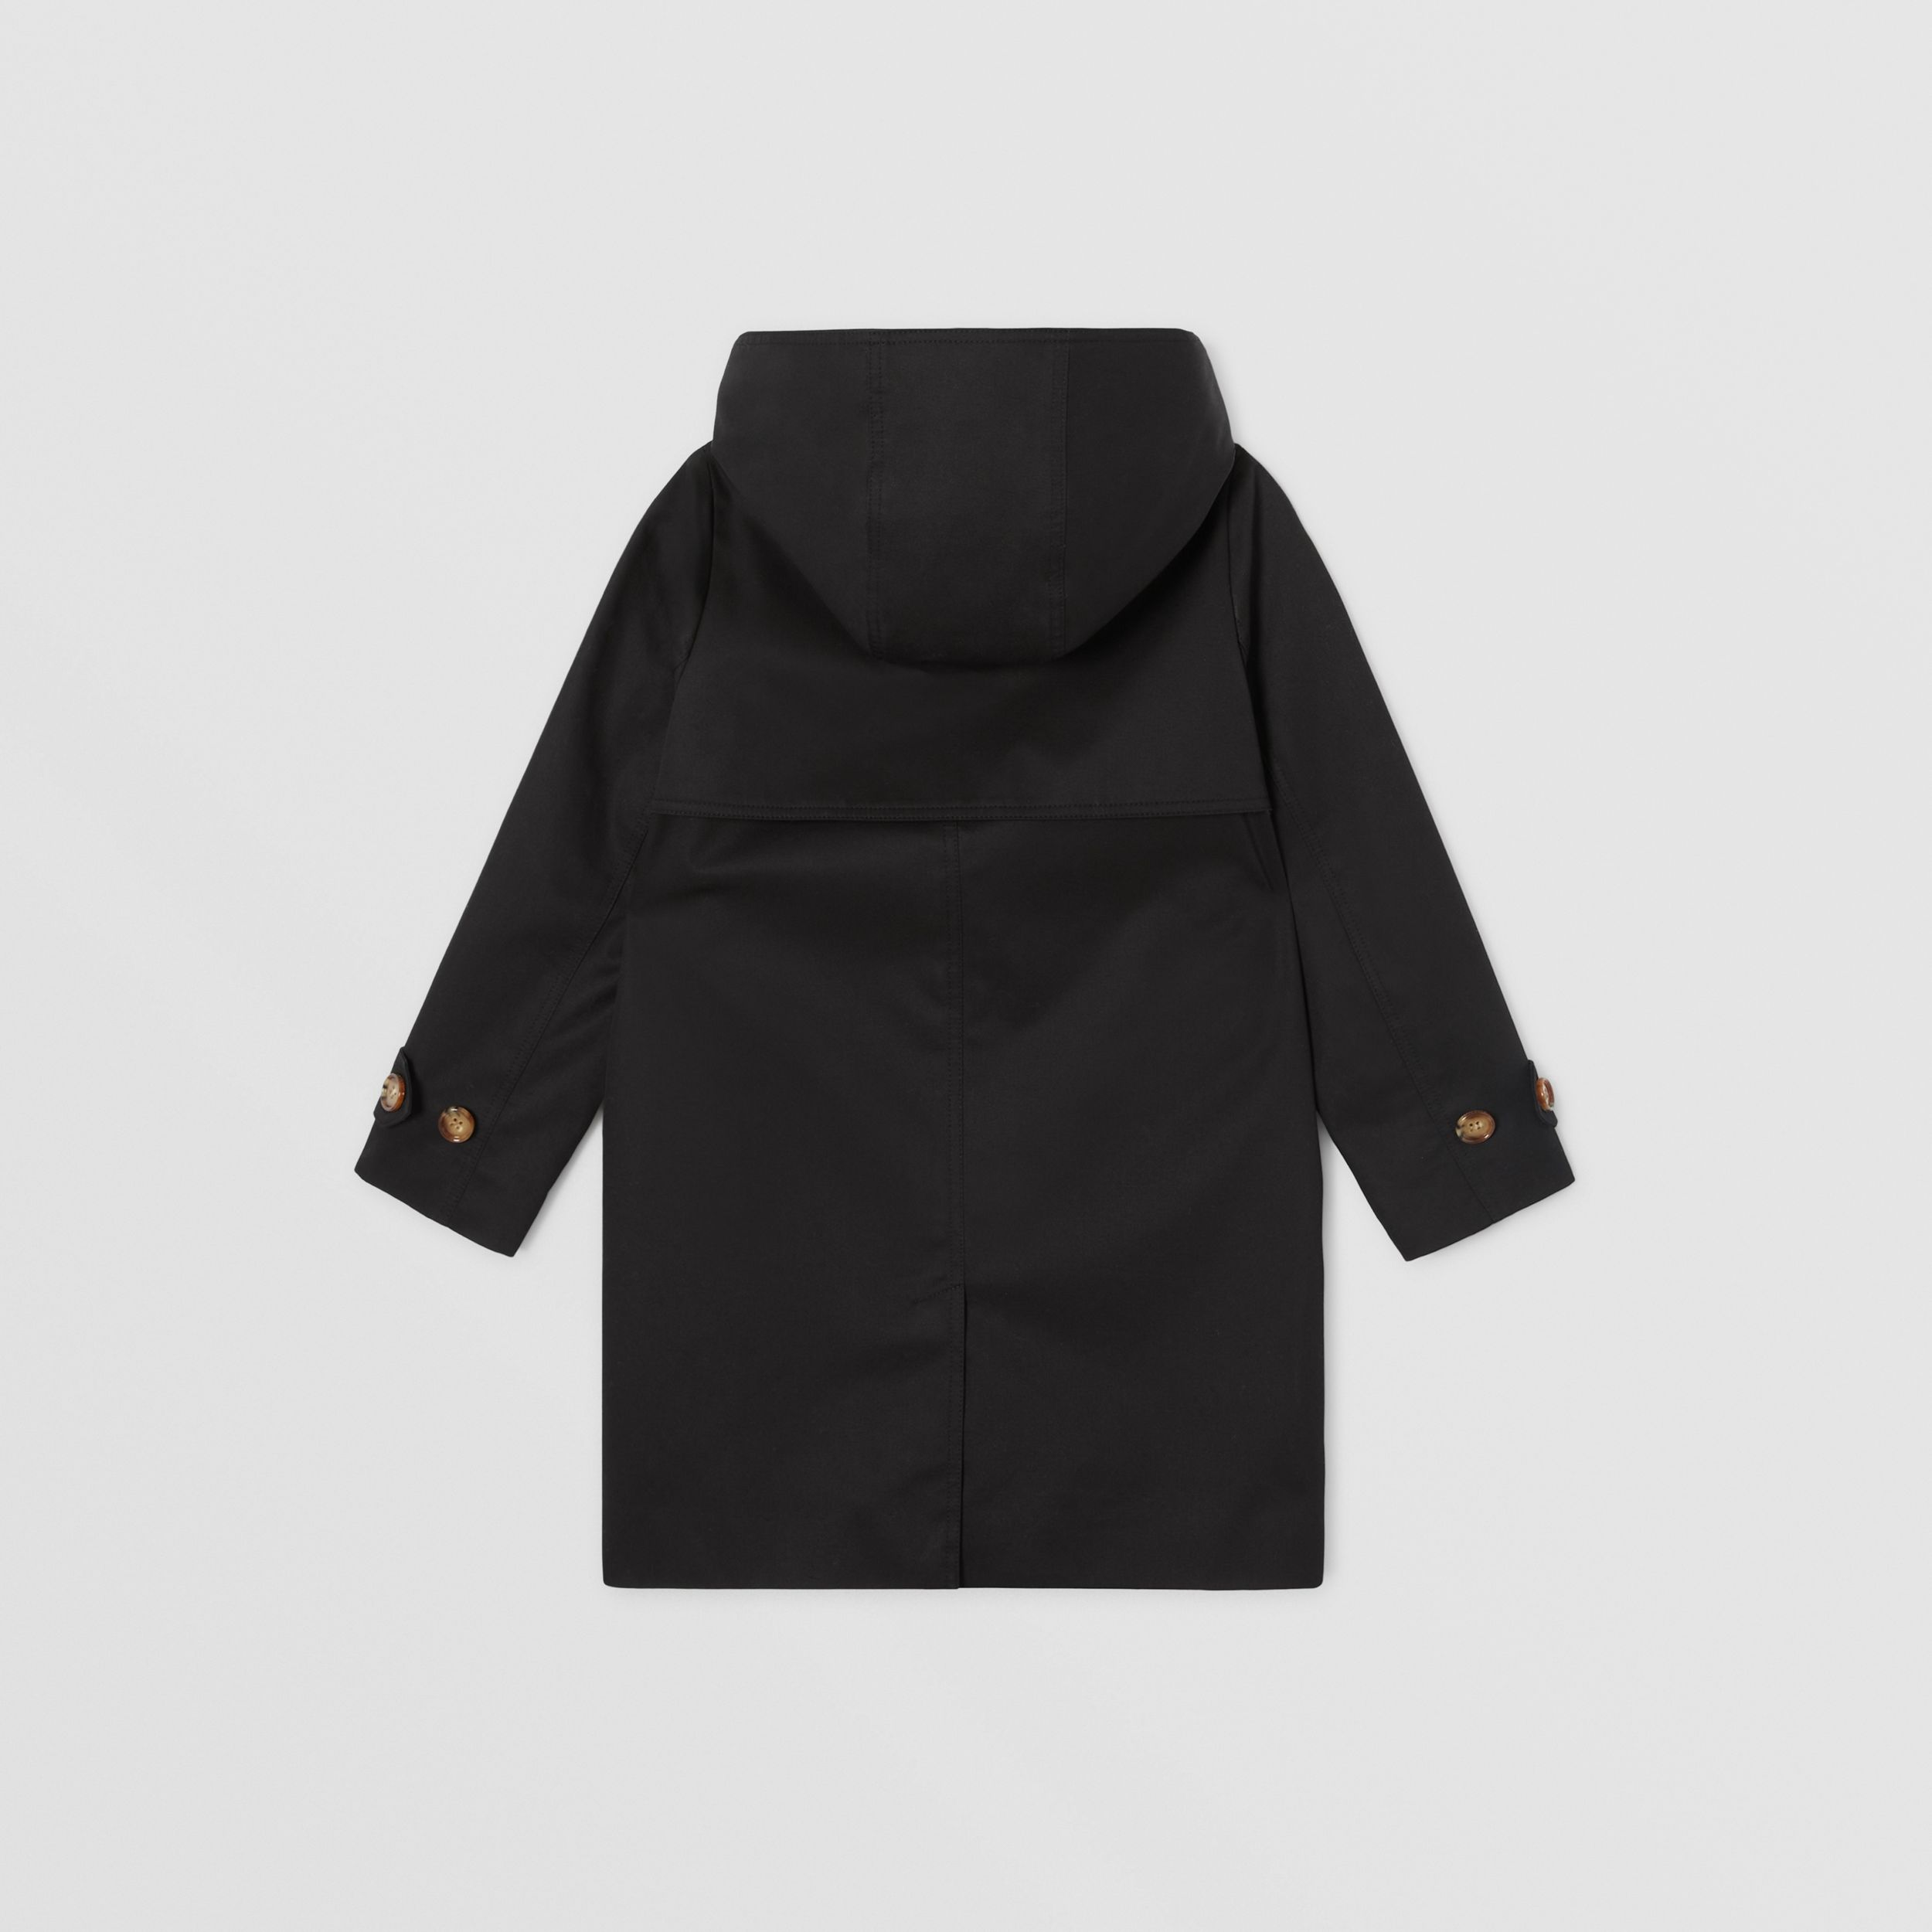 Detachable Hood Icon Stripe Trim Cotton Car Coat in Black | Burberry - 4